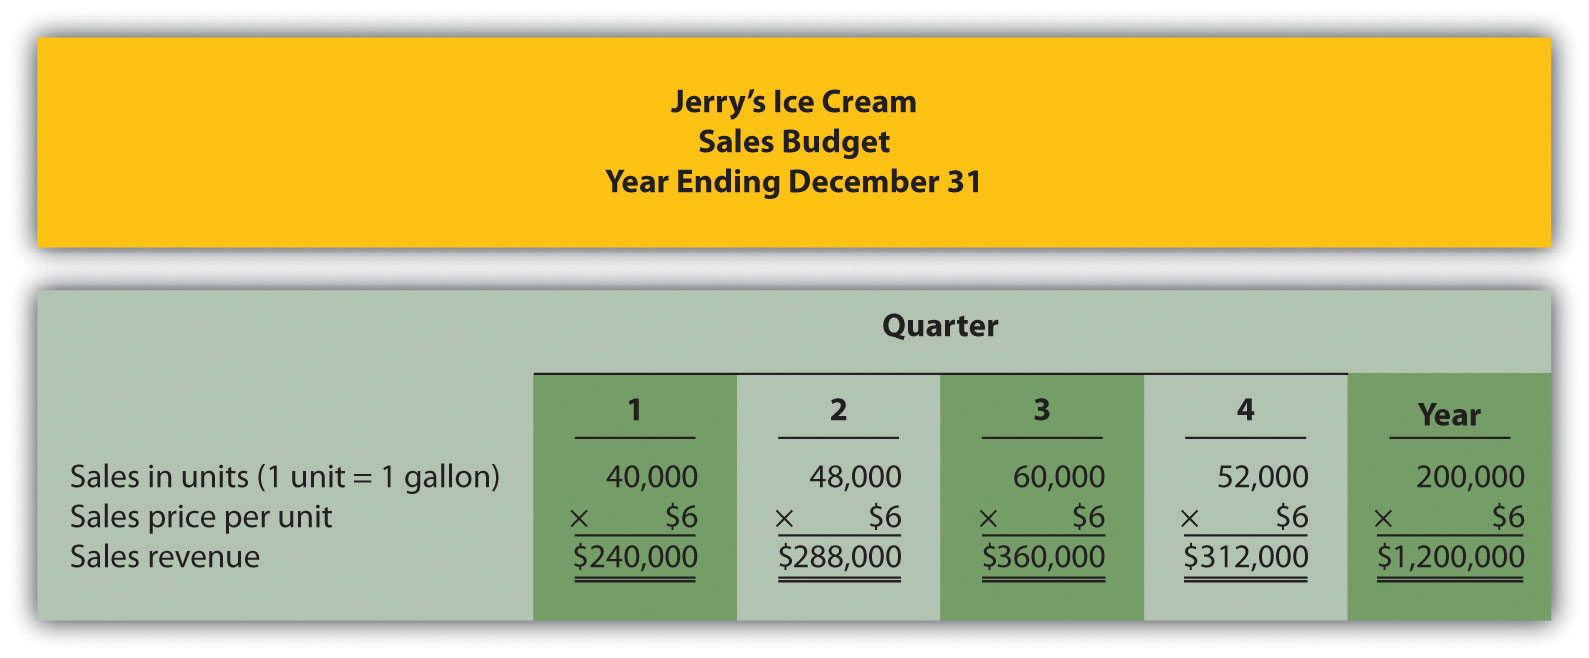 Figure 9.3 Sales Budget for Jerry's Ice Cream